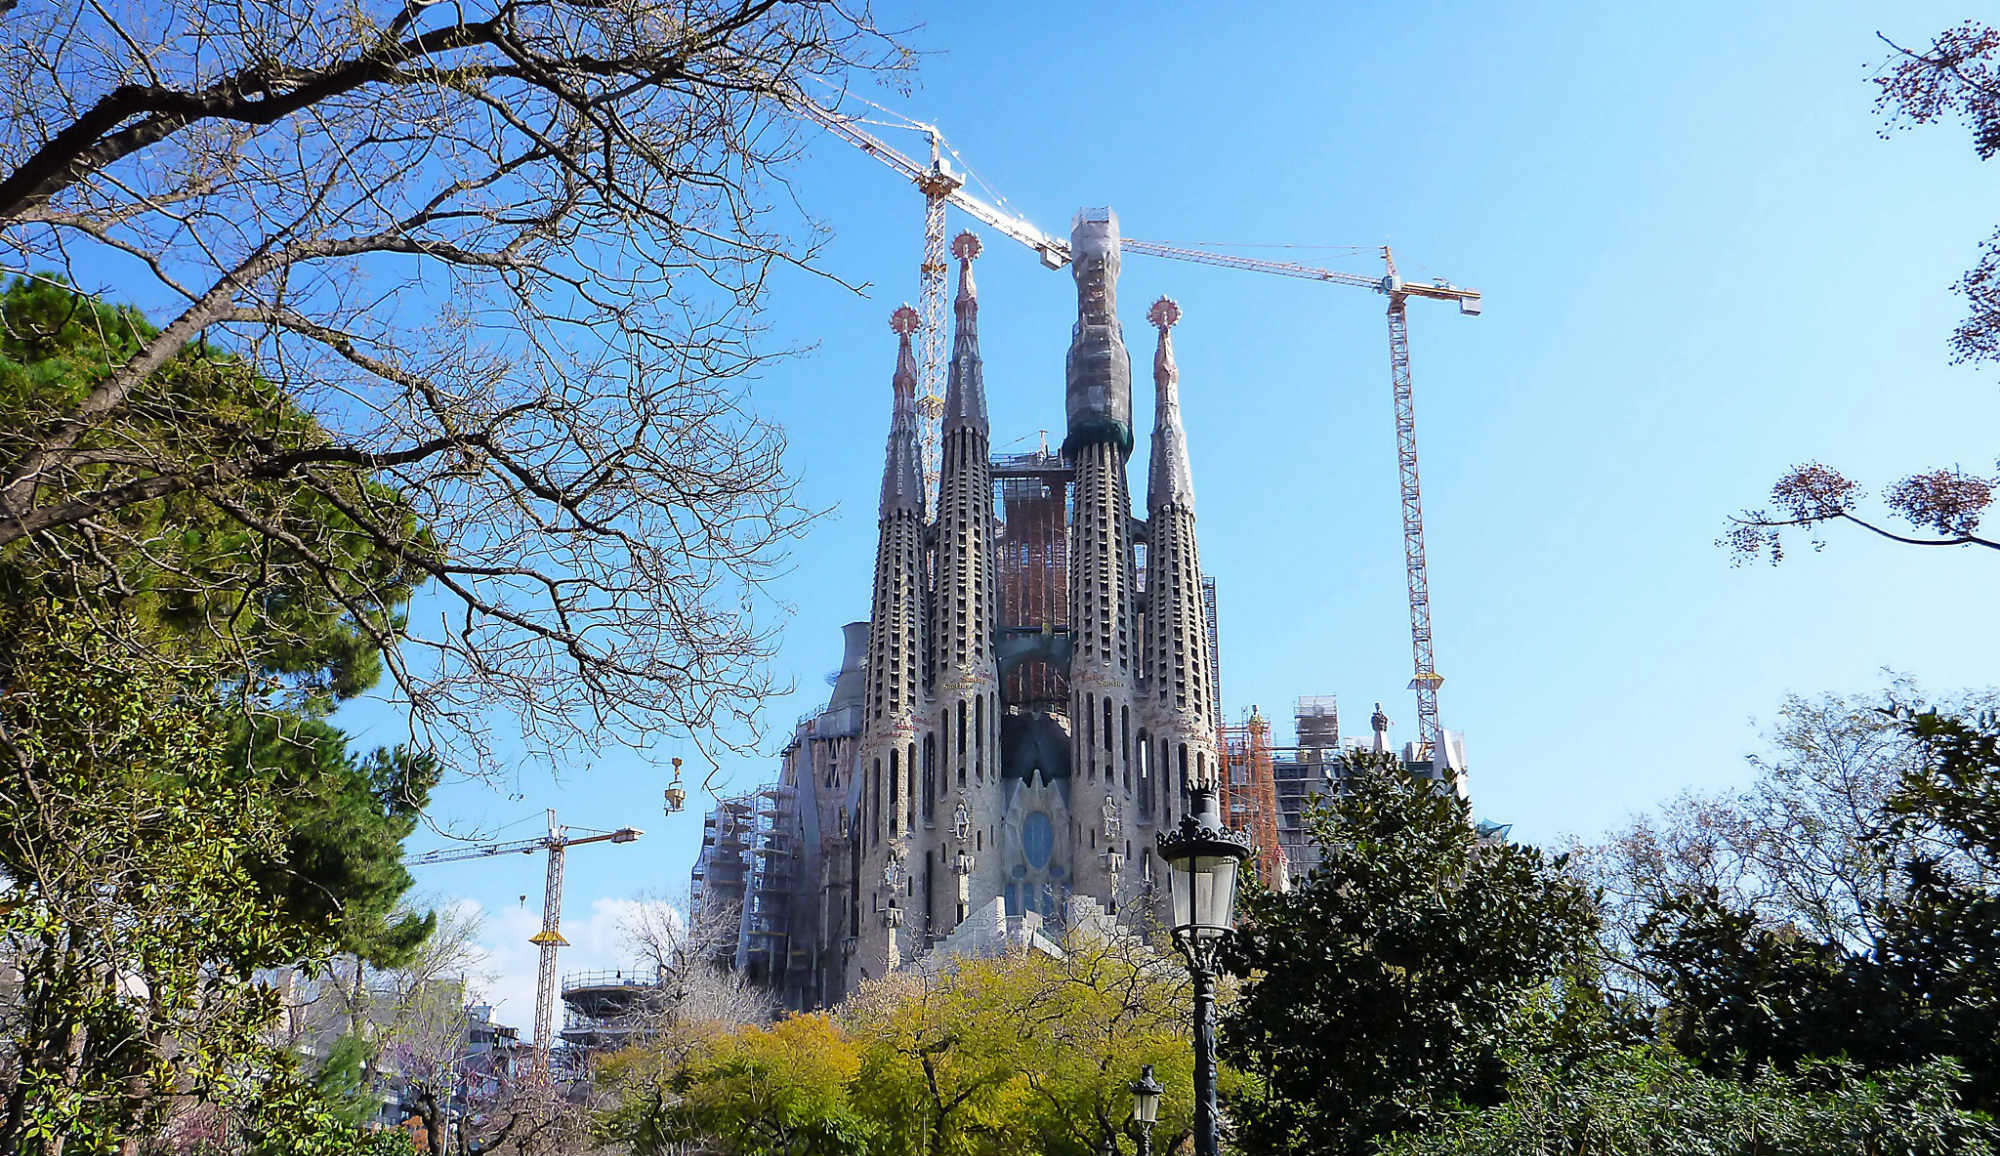 Sight: Sagrada Familia